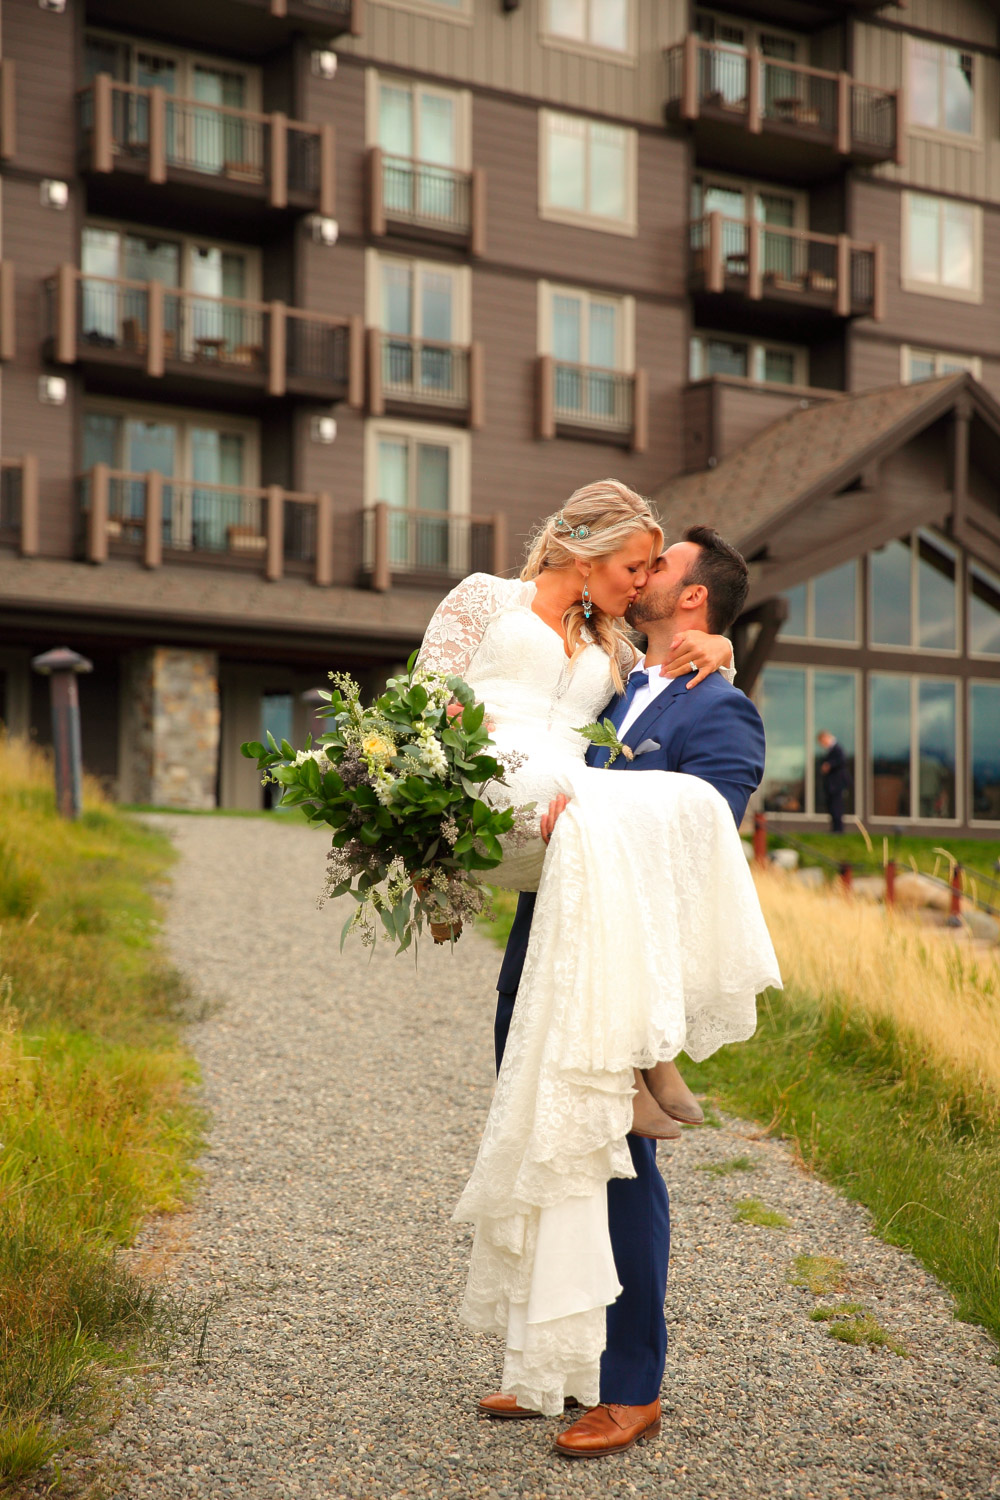 Wedding Suncadia Resort Elum Washington 14.jpg